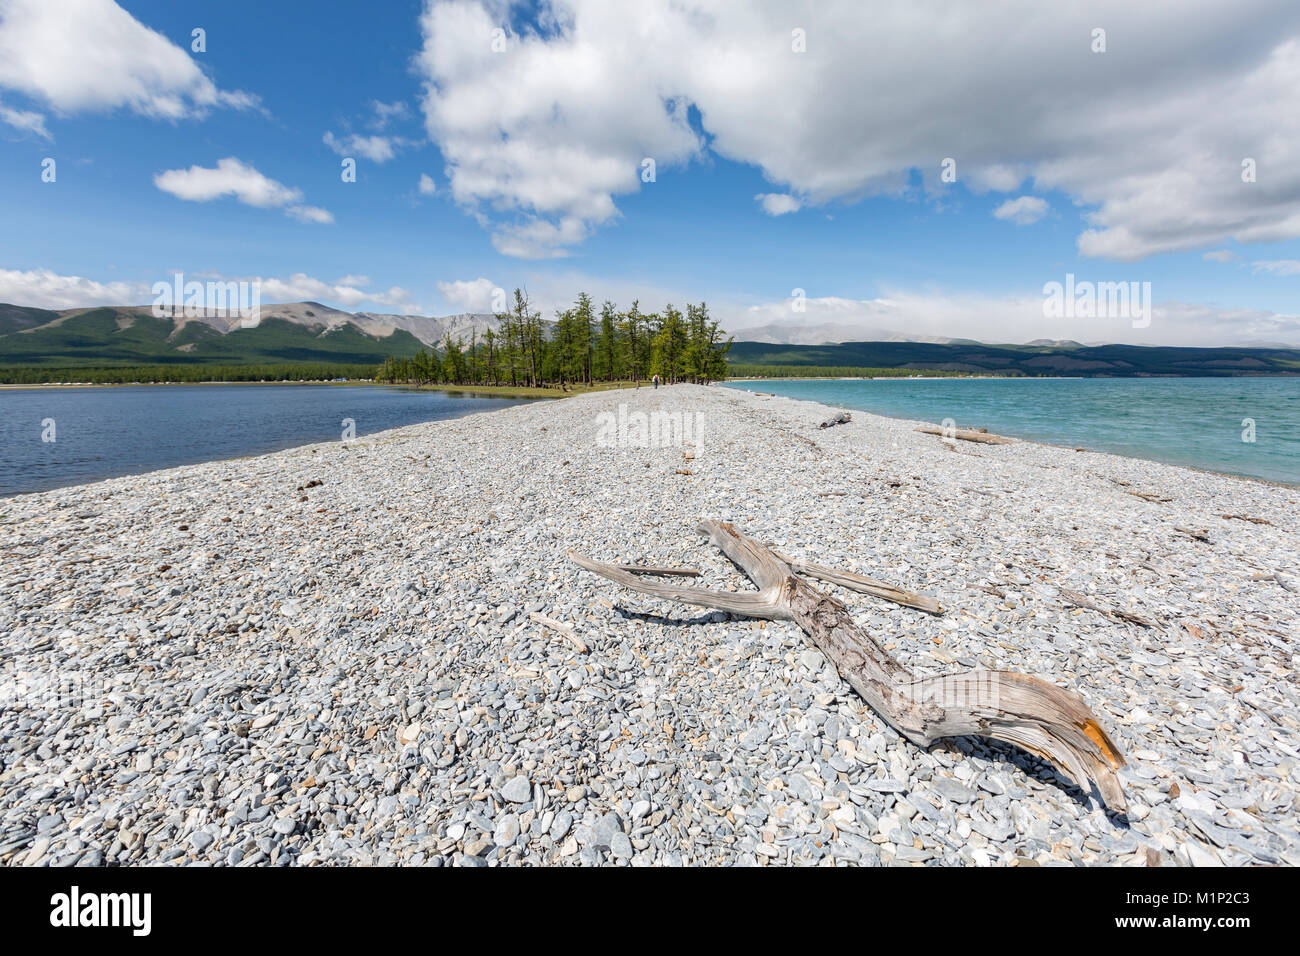 Pebble shores of Hovsgol Lake, Hovsgol province, Mongolia, Central Asia, Asia - Stock Image